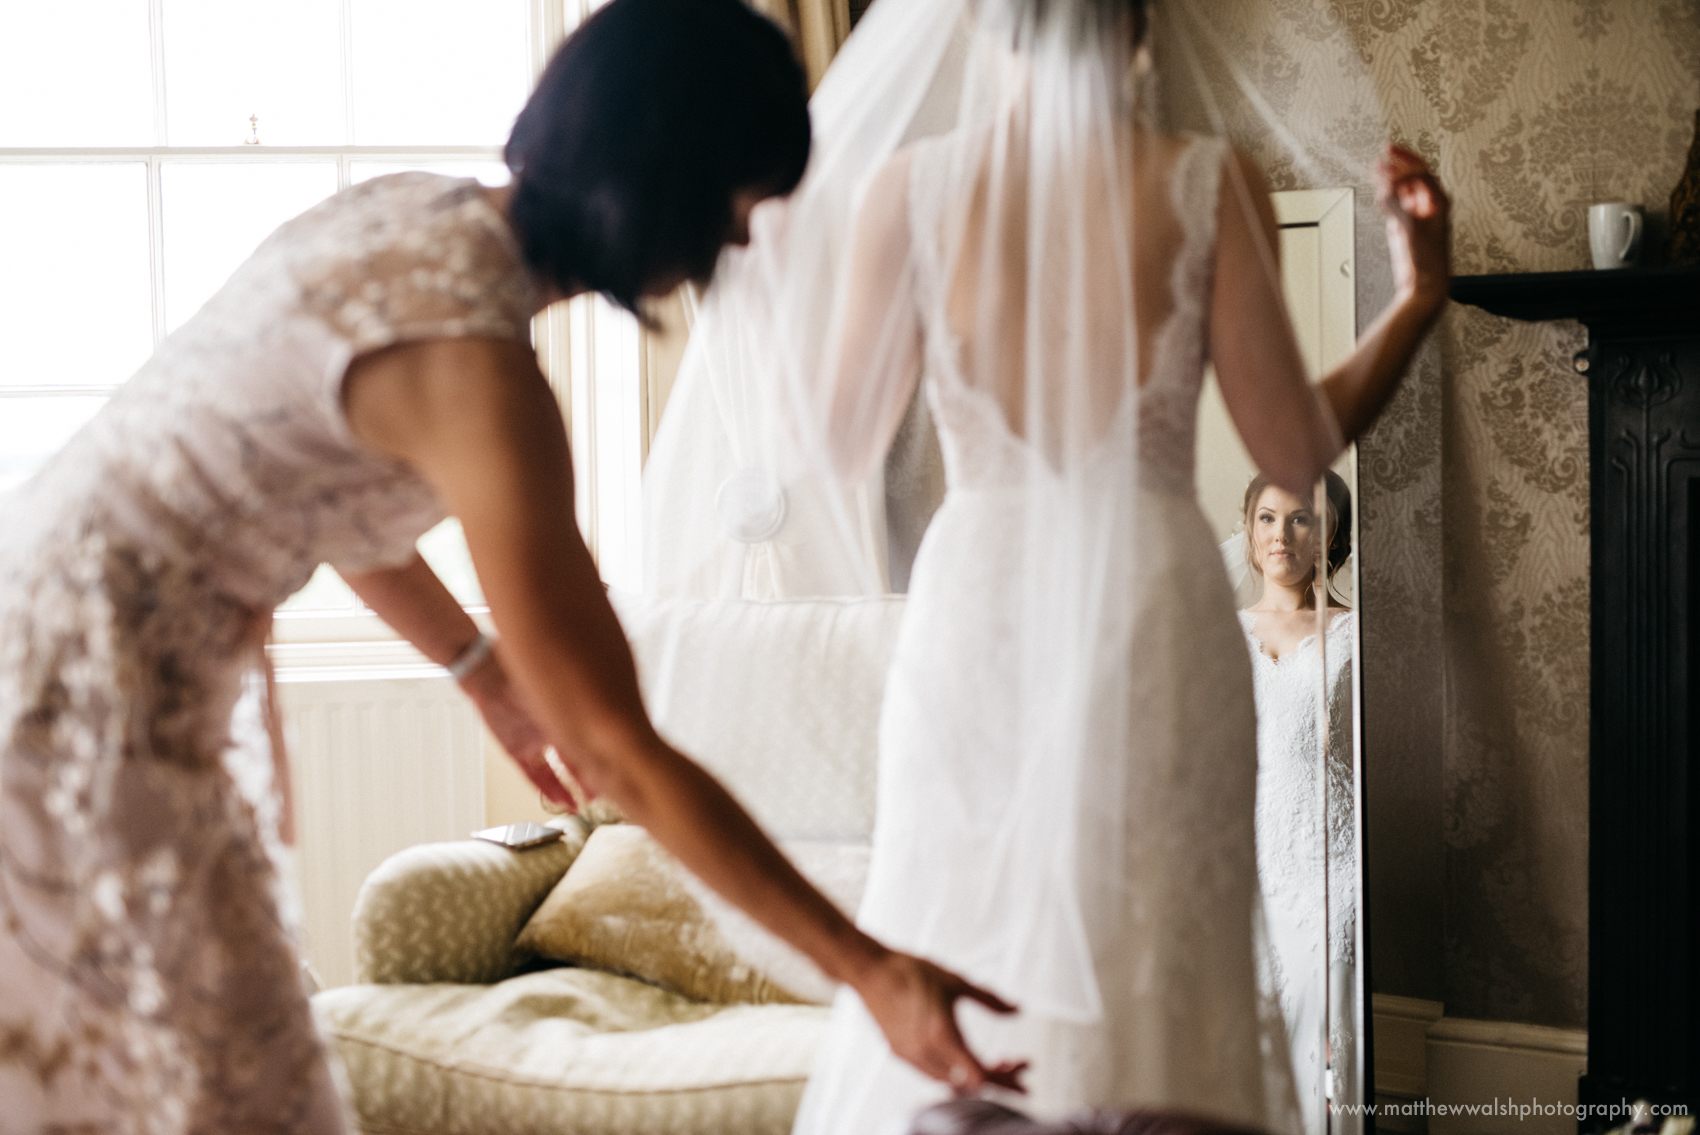 A Reportage moment capturing the mother of the bride putting her dress on